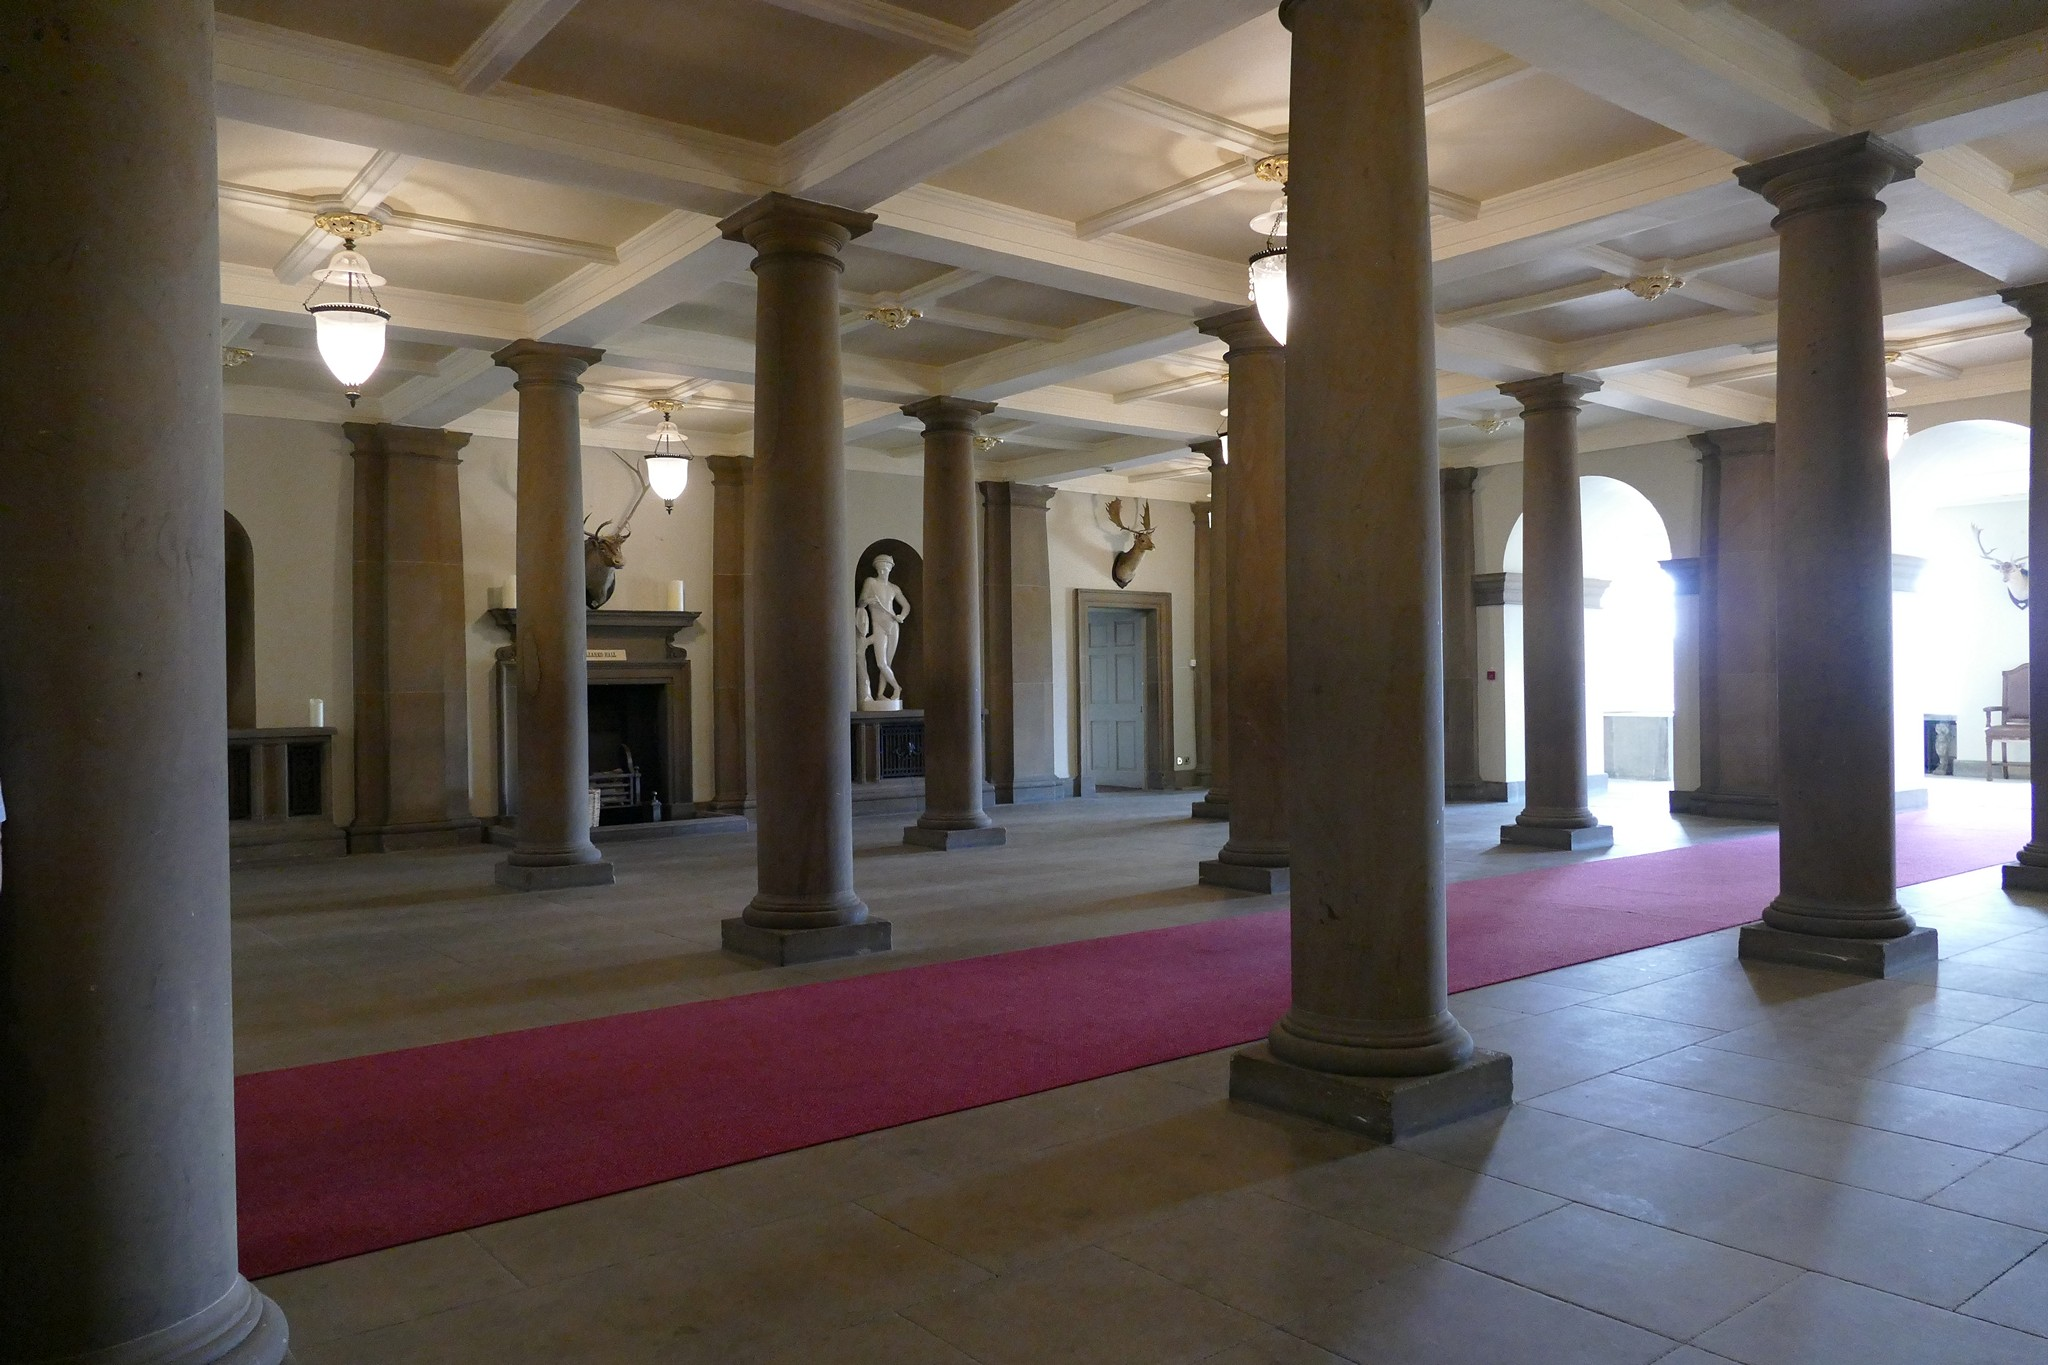 The Pillared Hall